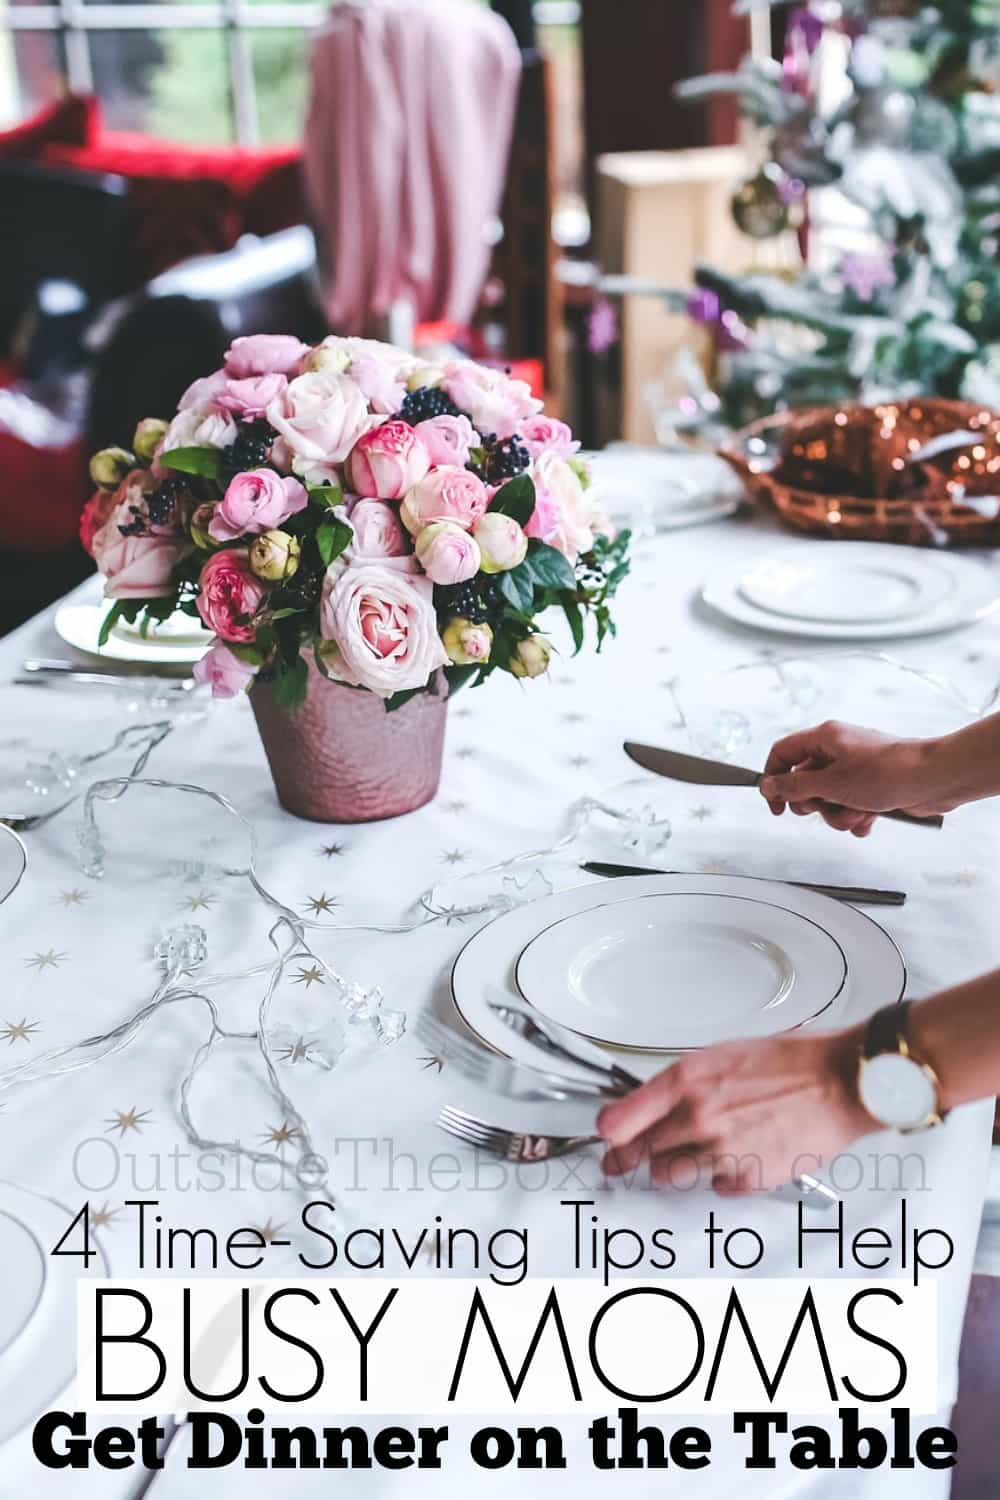 Being a working mom and getting dinner on the table in time can be quite a daunting task. Here are four tips on how a working mom can still get a delicious dinner on the table for her your family, seamlessly.